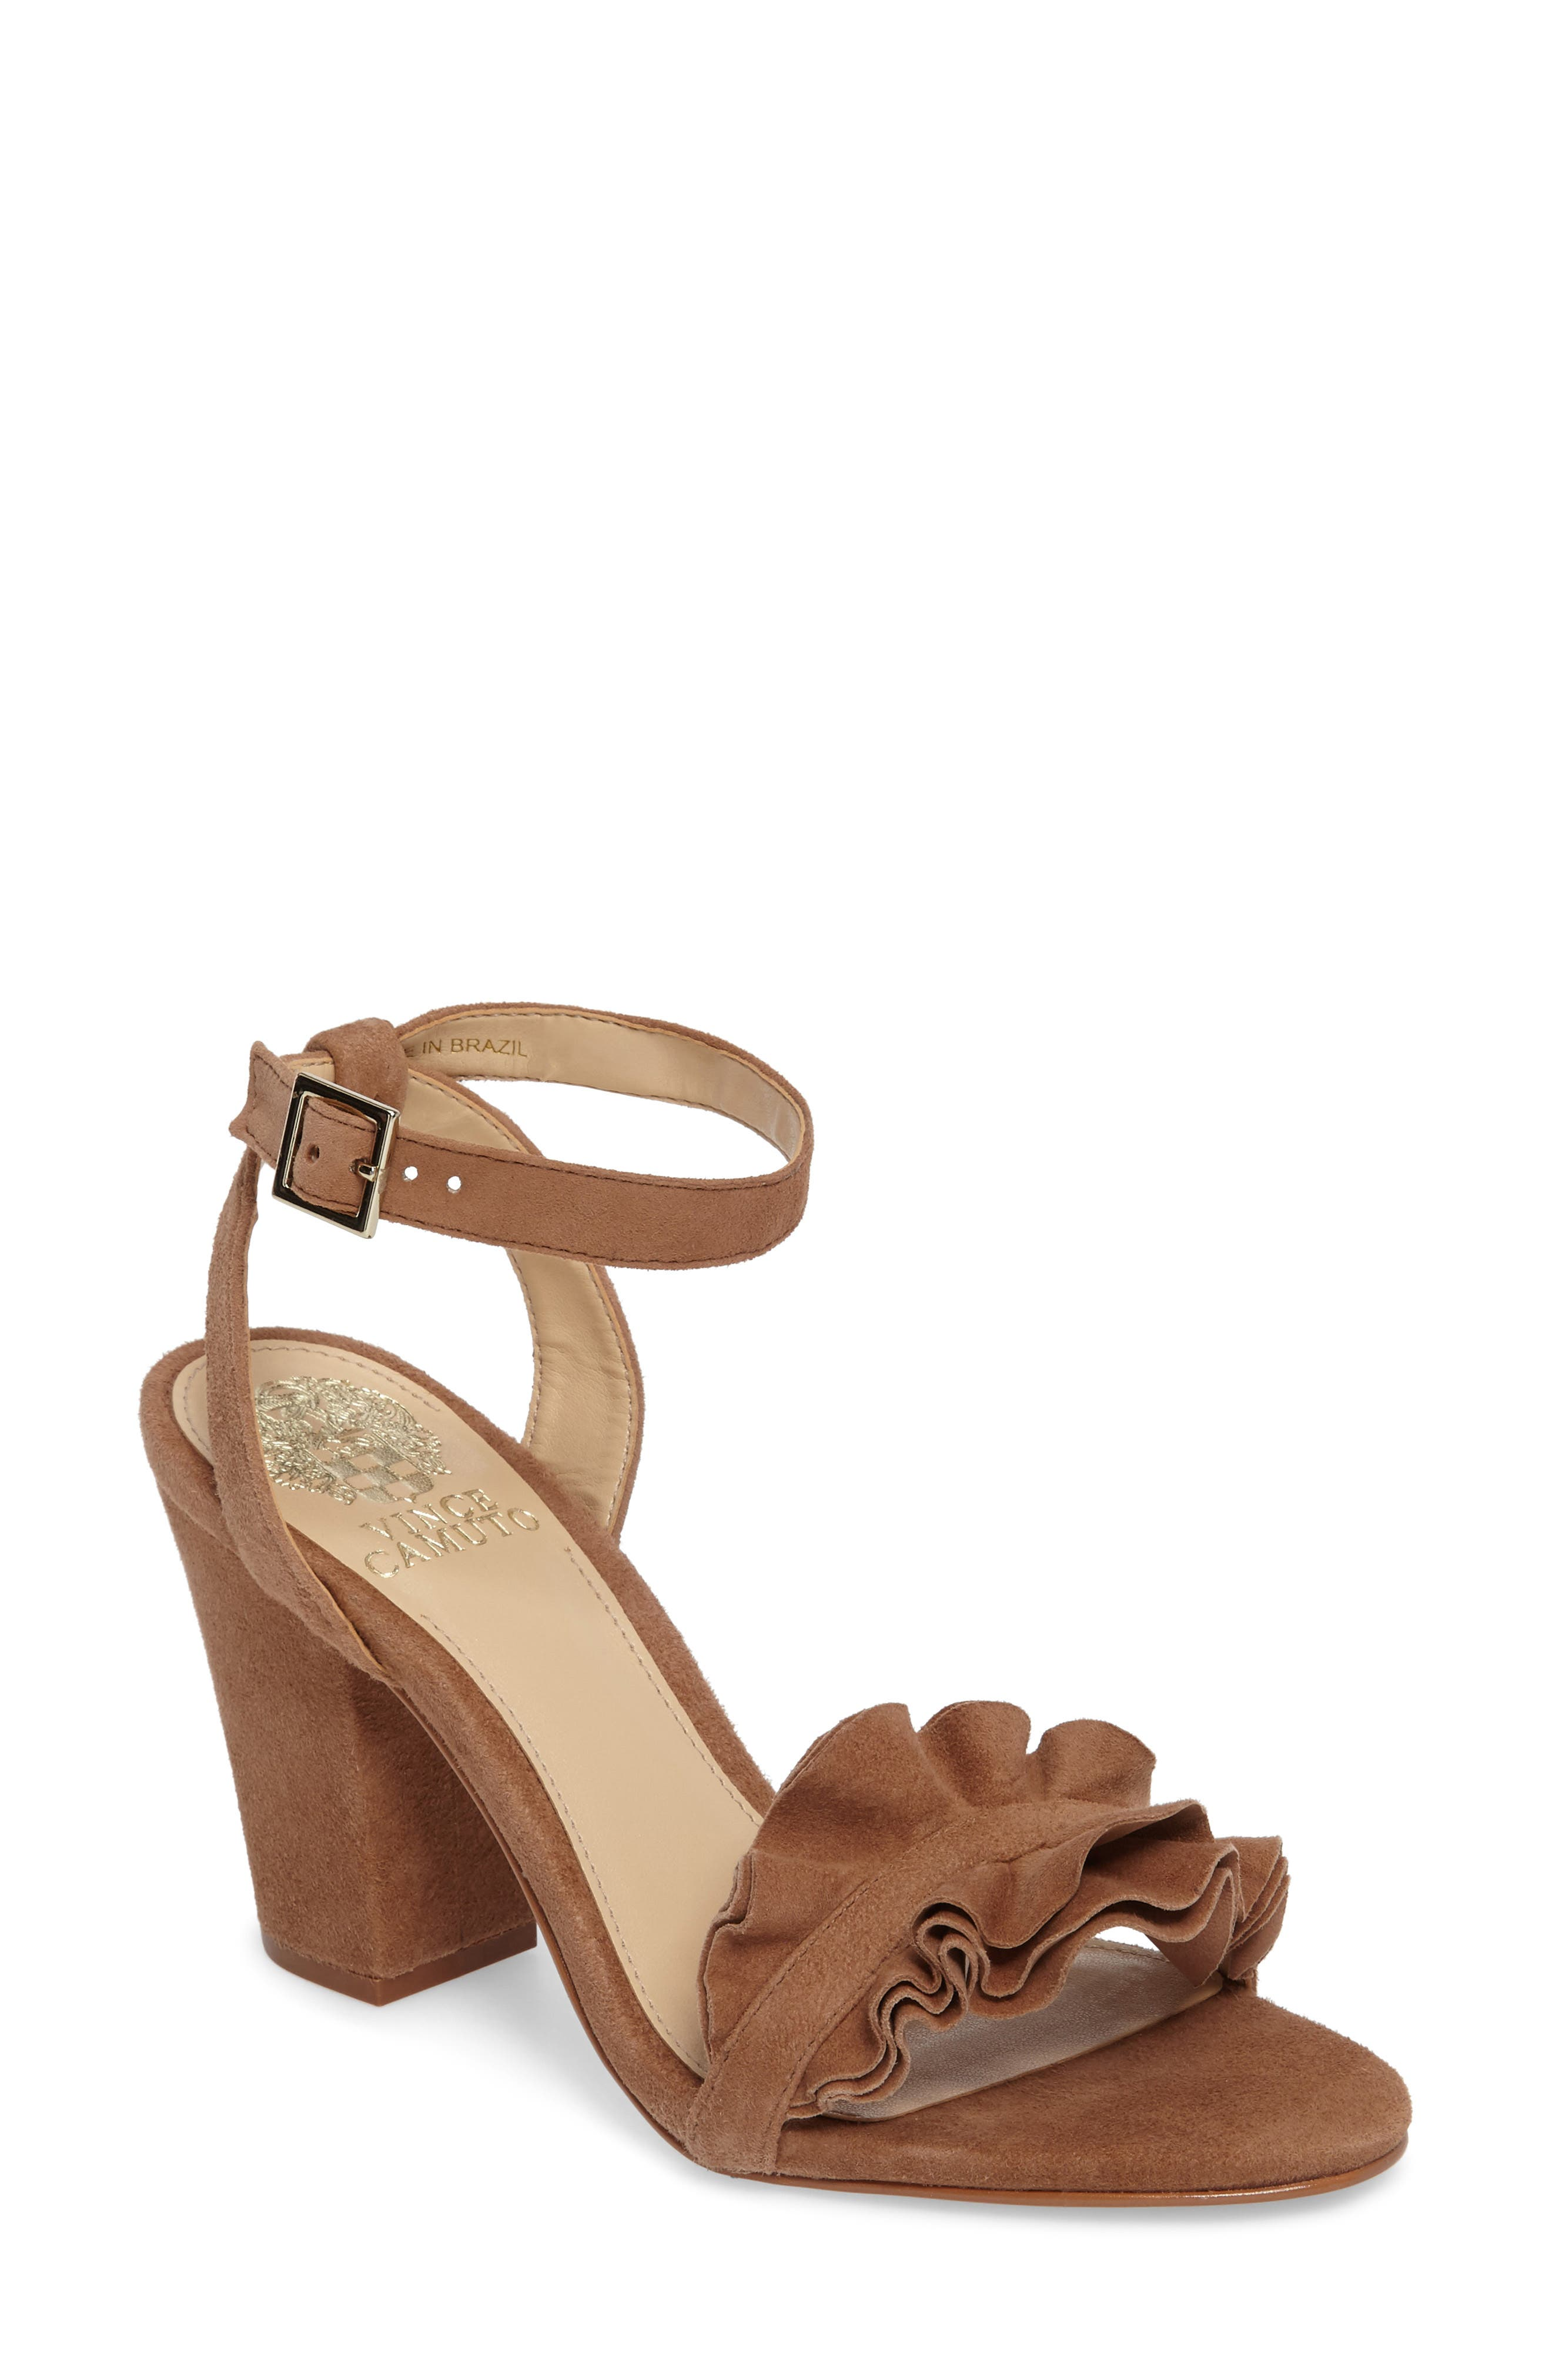 Vinta Sandal,                             Main thumbnail 1, color,                             Amendoa Suede